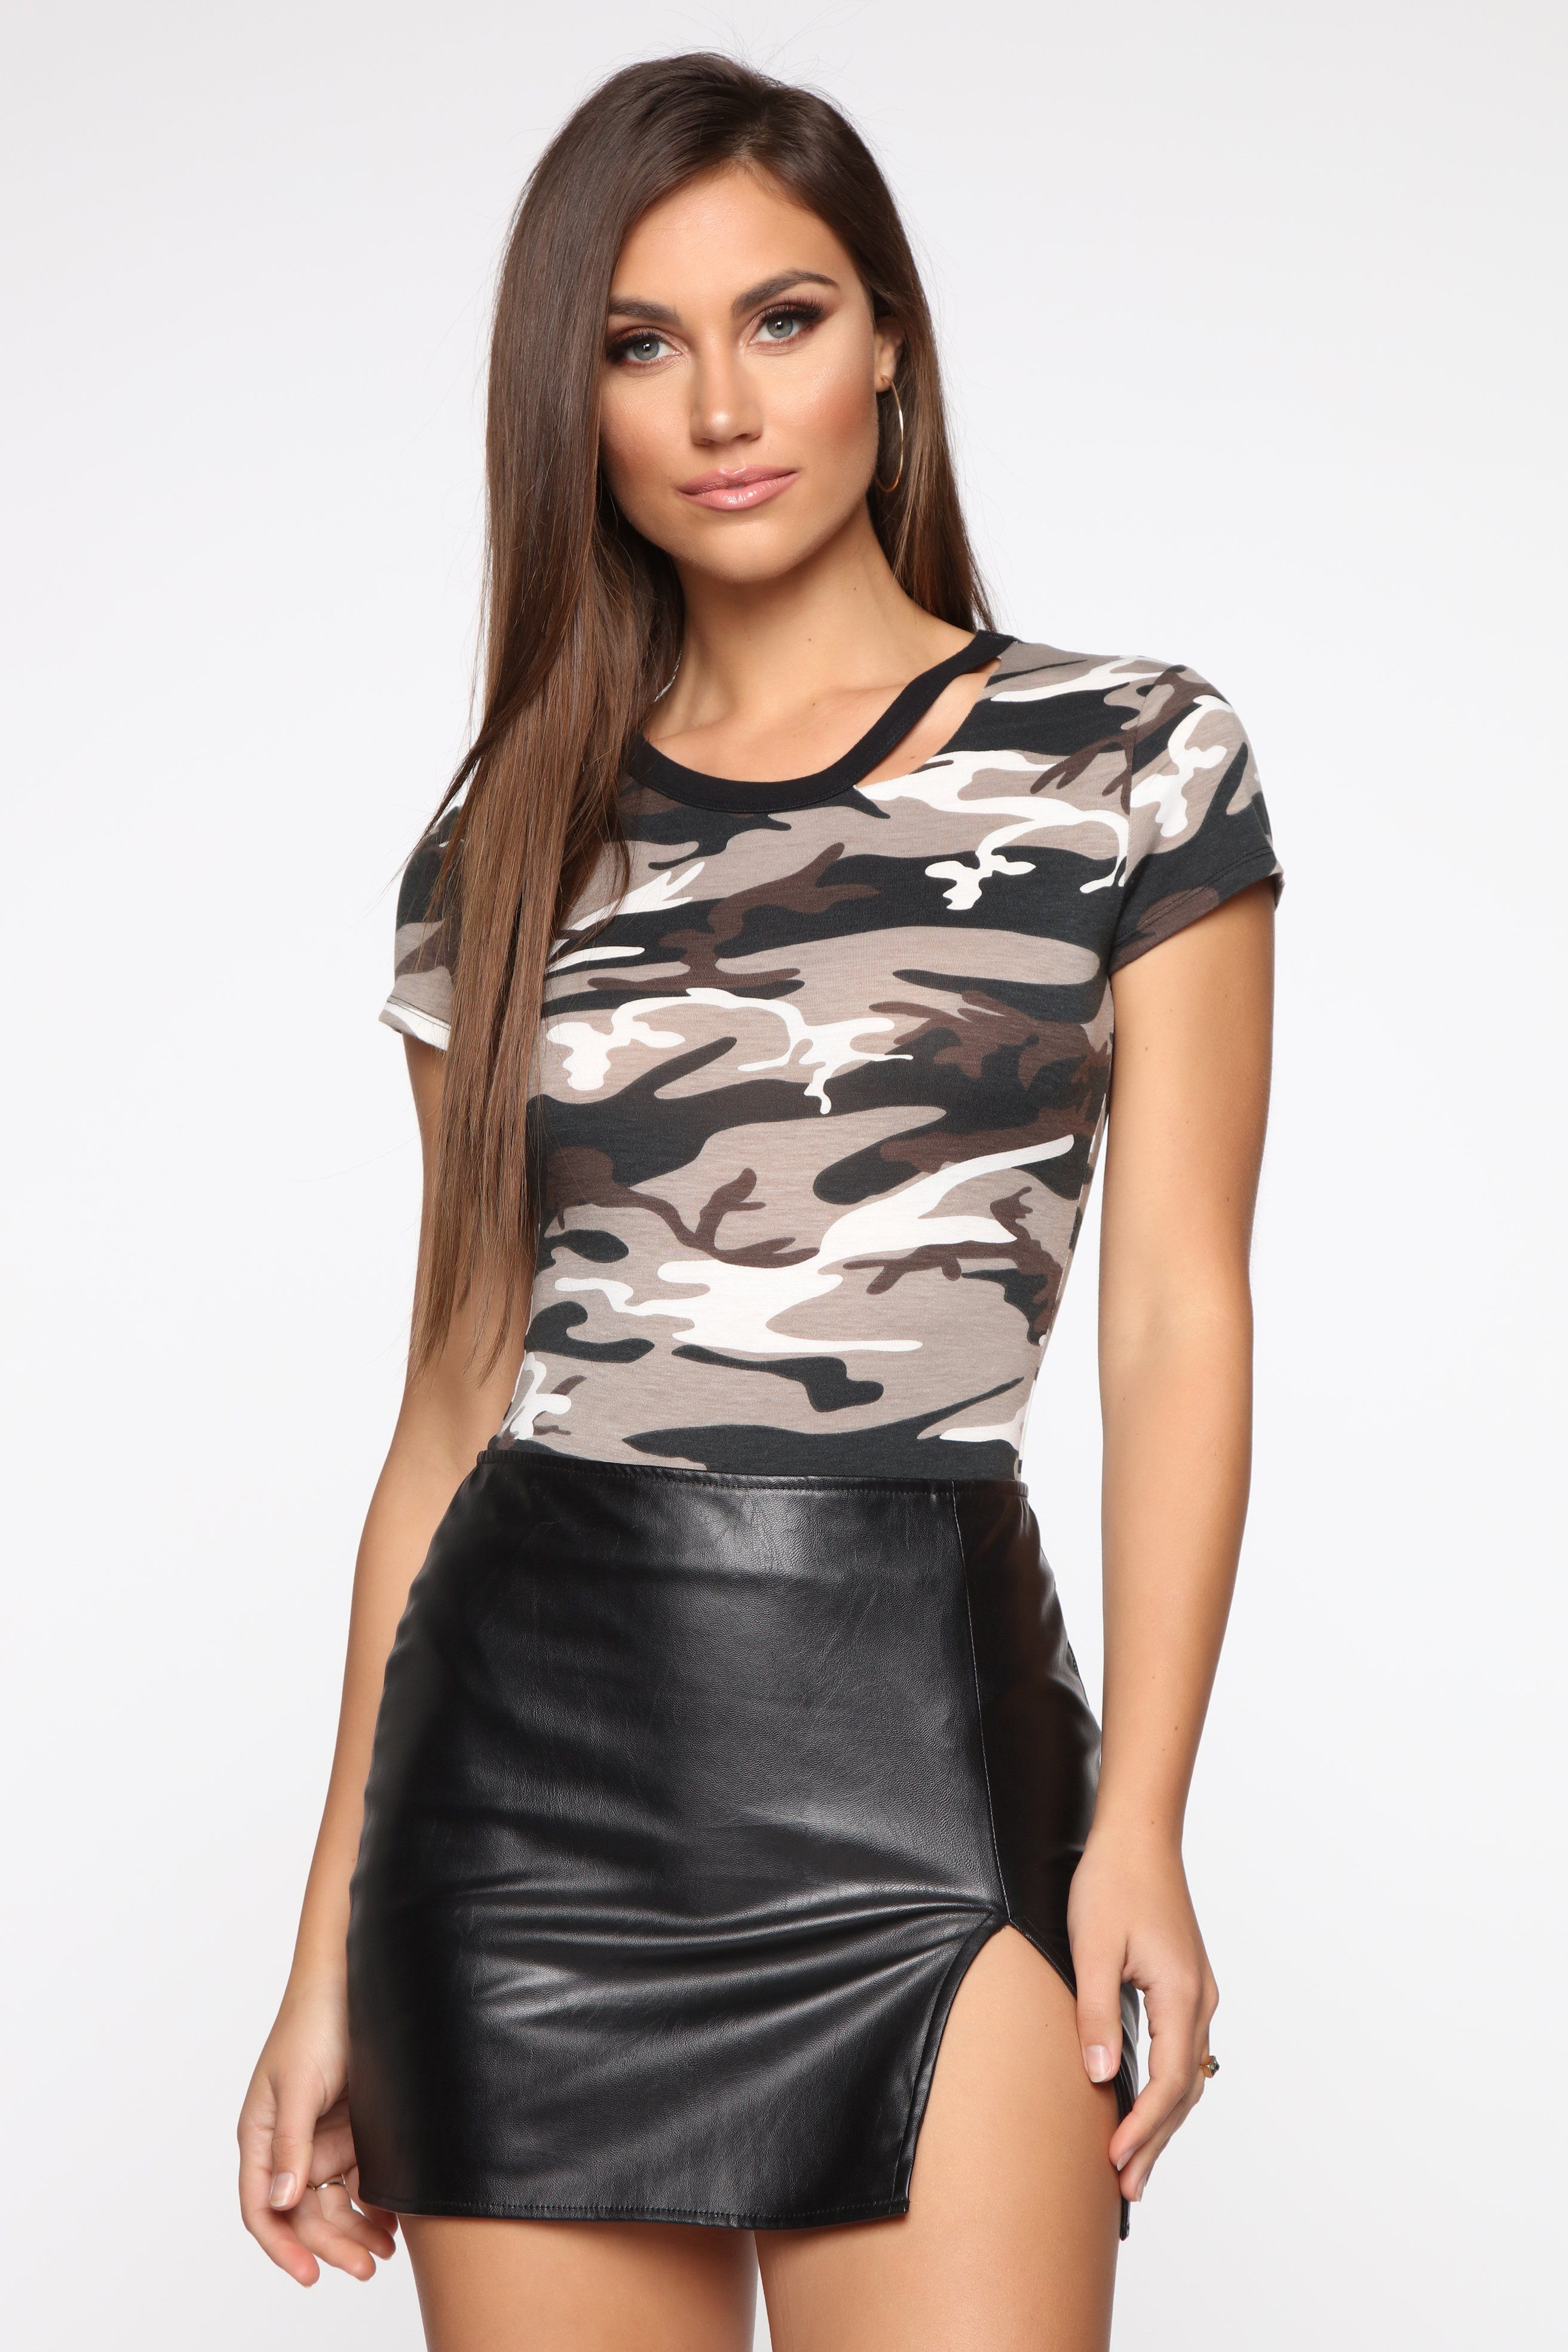 Searching For You Bodysuit Grey Camo in 2020 Fashion